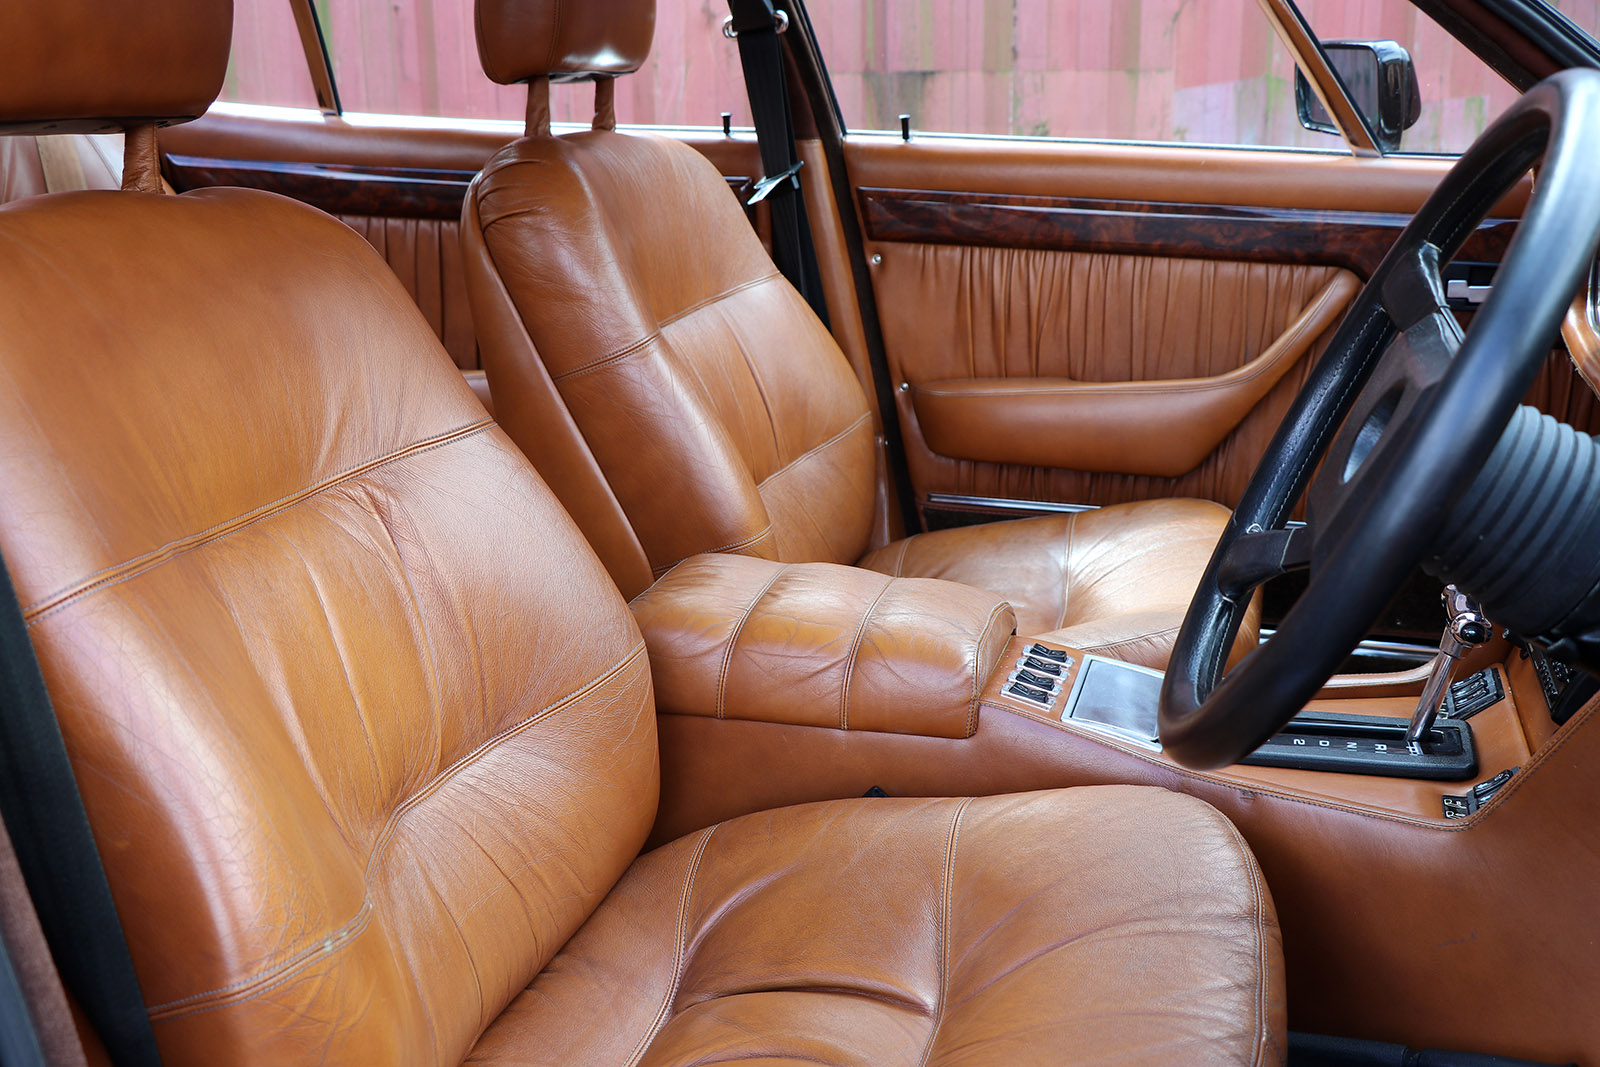 1982 series 2 burgundy deauville interior 7 web.jpg